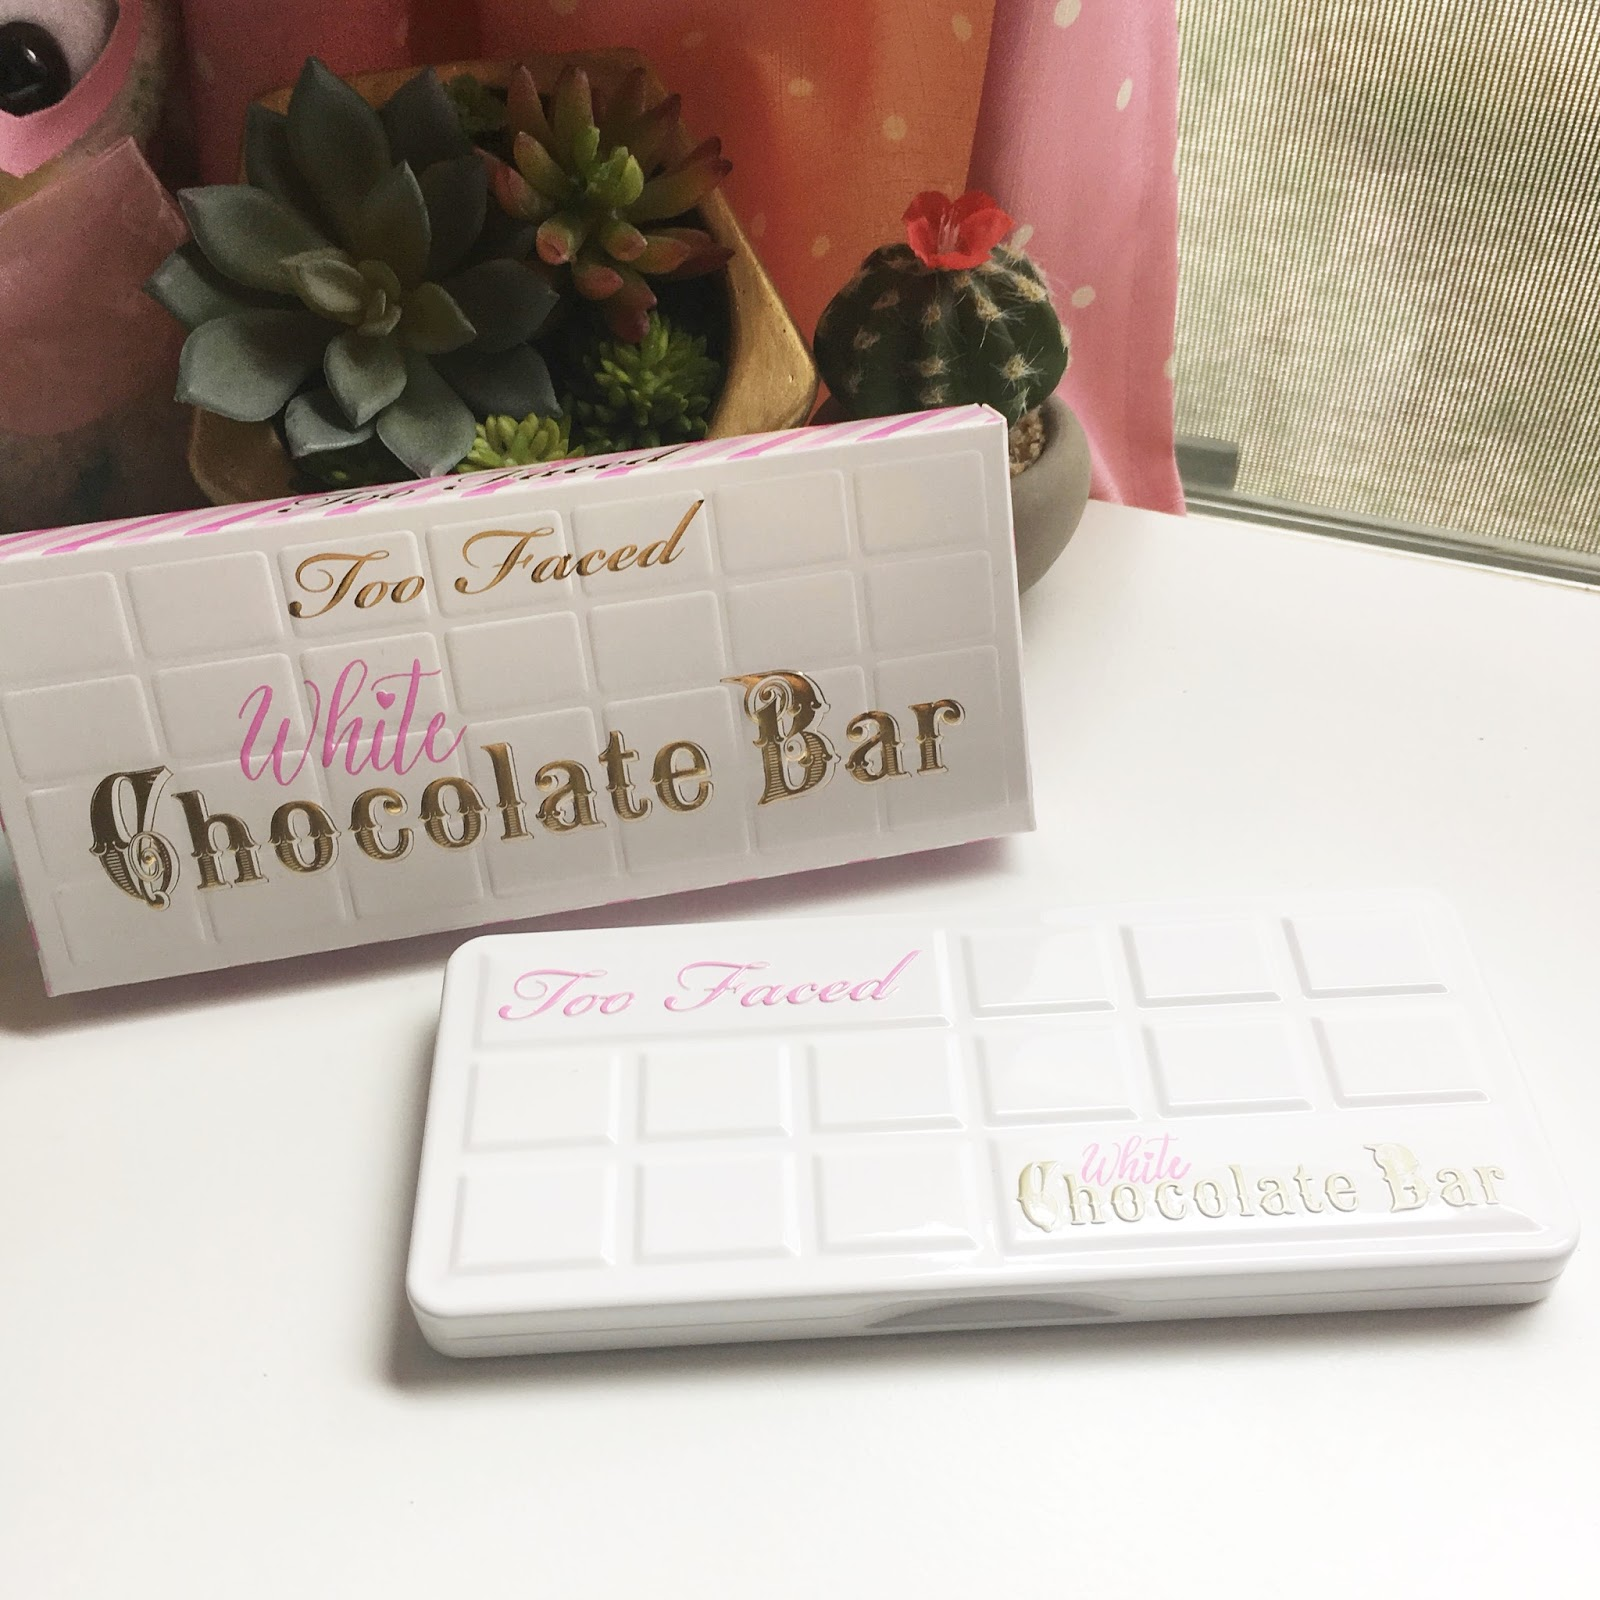 ♡ Marshmallow Beauty Blog & Reviews♡ : ♡ Too Faced White ...